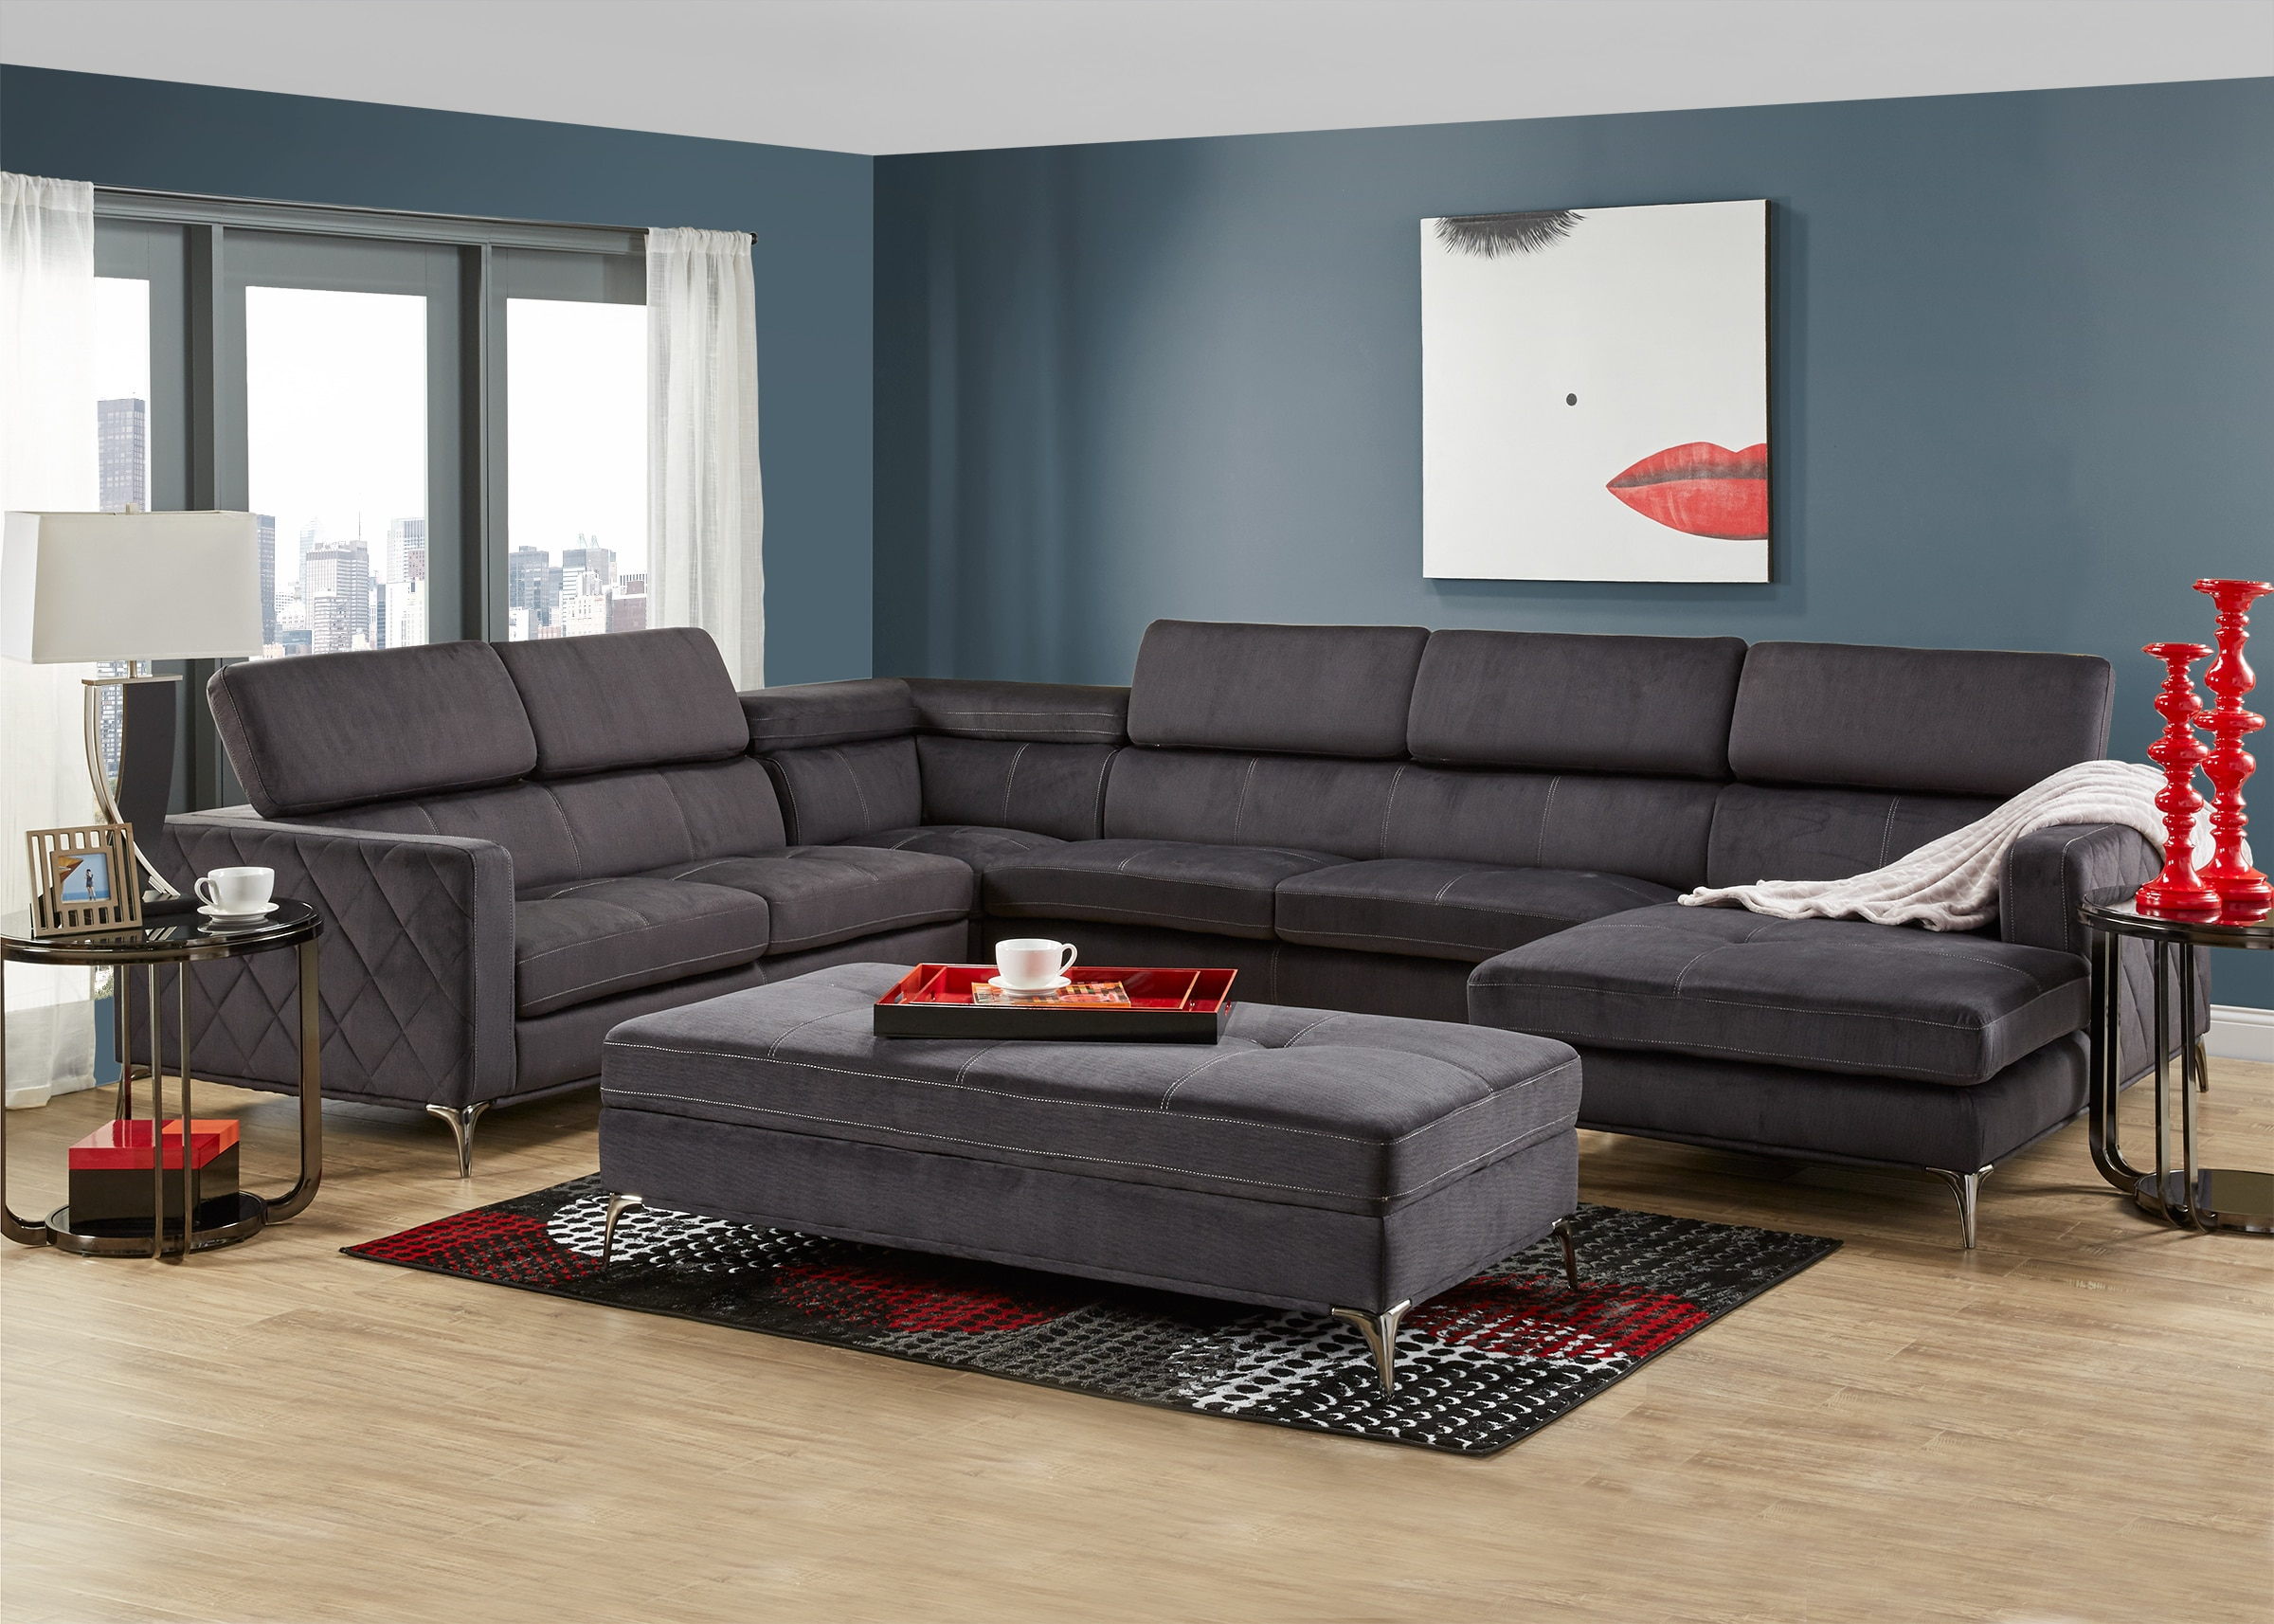 Groovy Lola Charcoal 4 Pc Sectional Caraccident5 Cool Chair Designs And Ideas Caraccident5Info